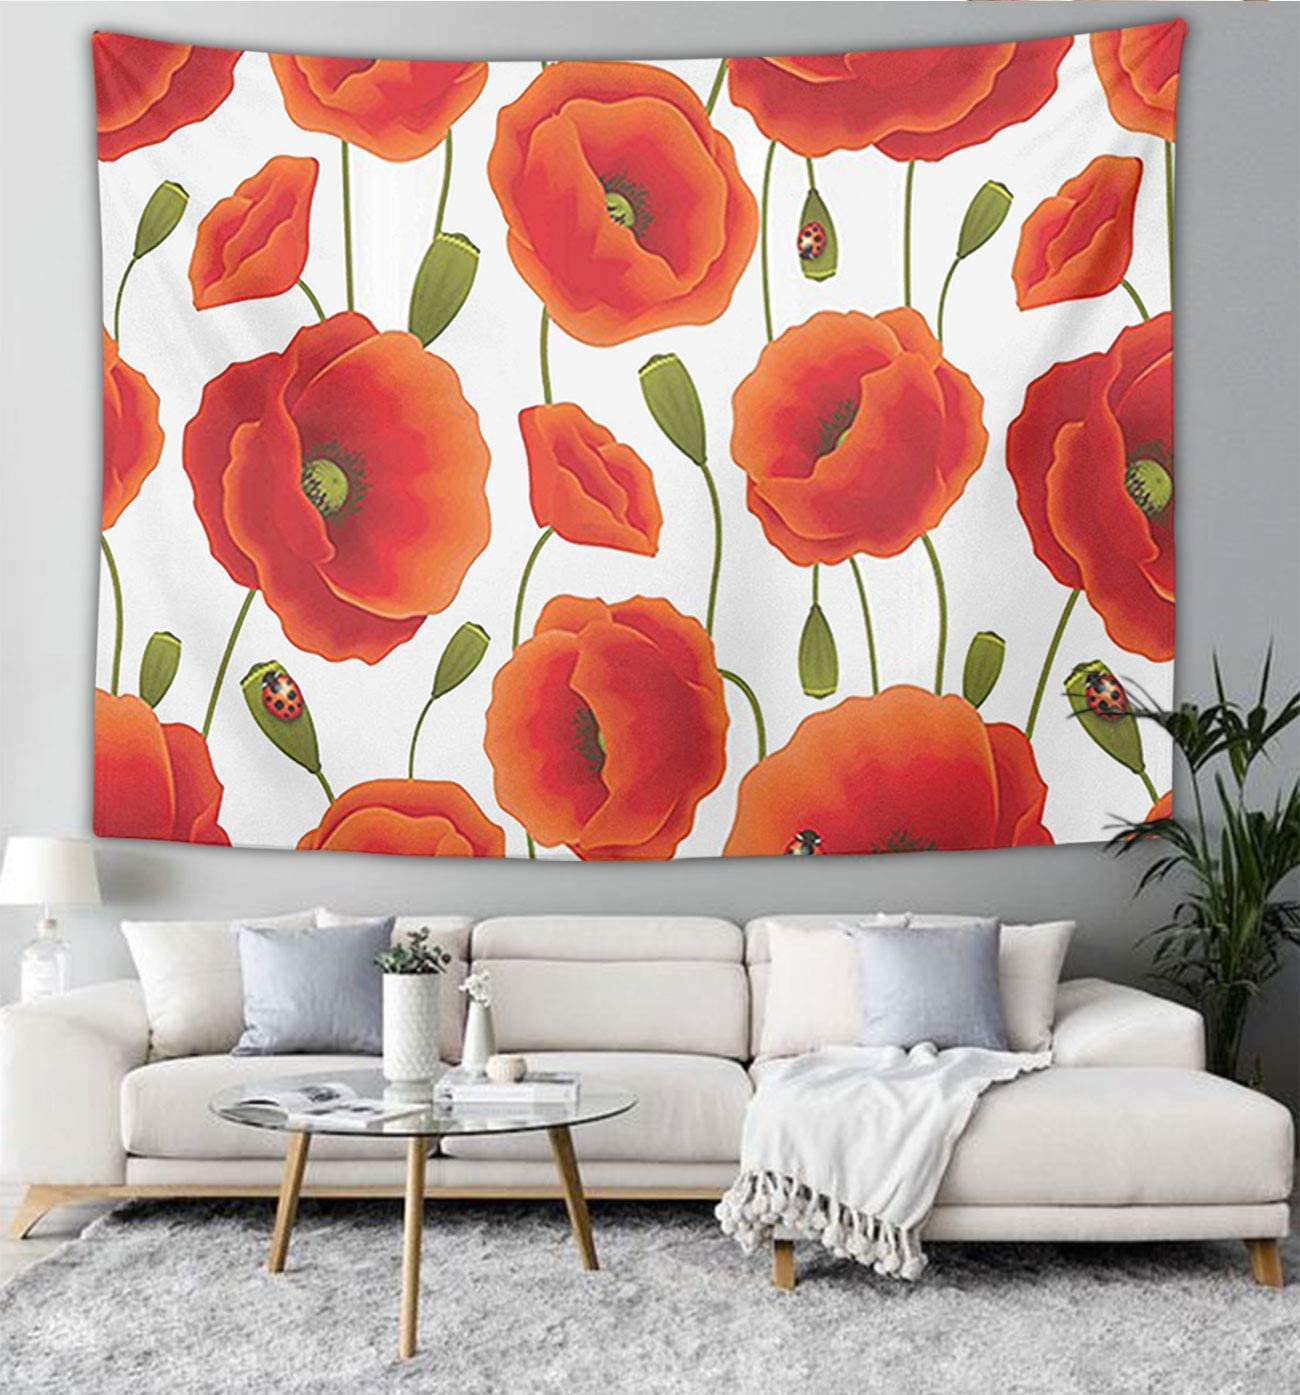 NiYoung Floral Pattern of Poppy Flowers Wall Hanging, Psychedelic Wall Art, Dorm D¡§ cor Beach Throw, Indian Wall Tapestries Art 60 x 70 Inches